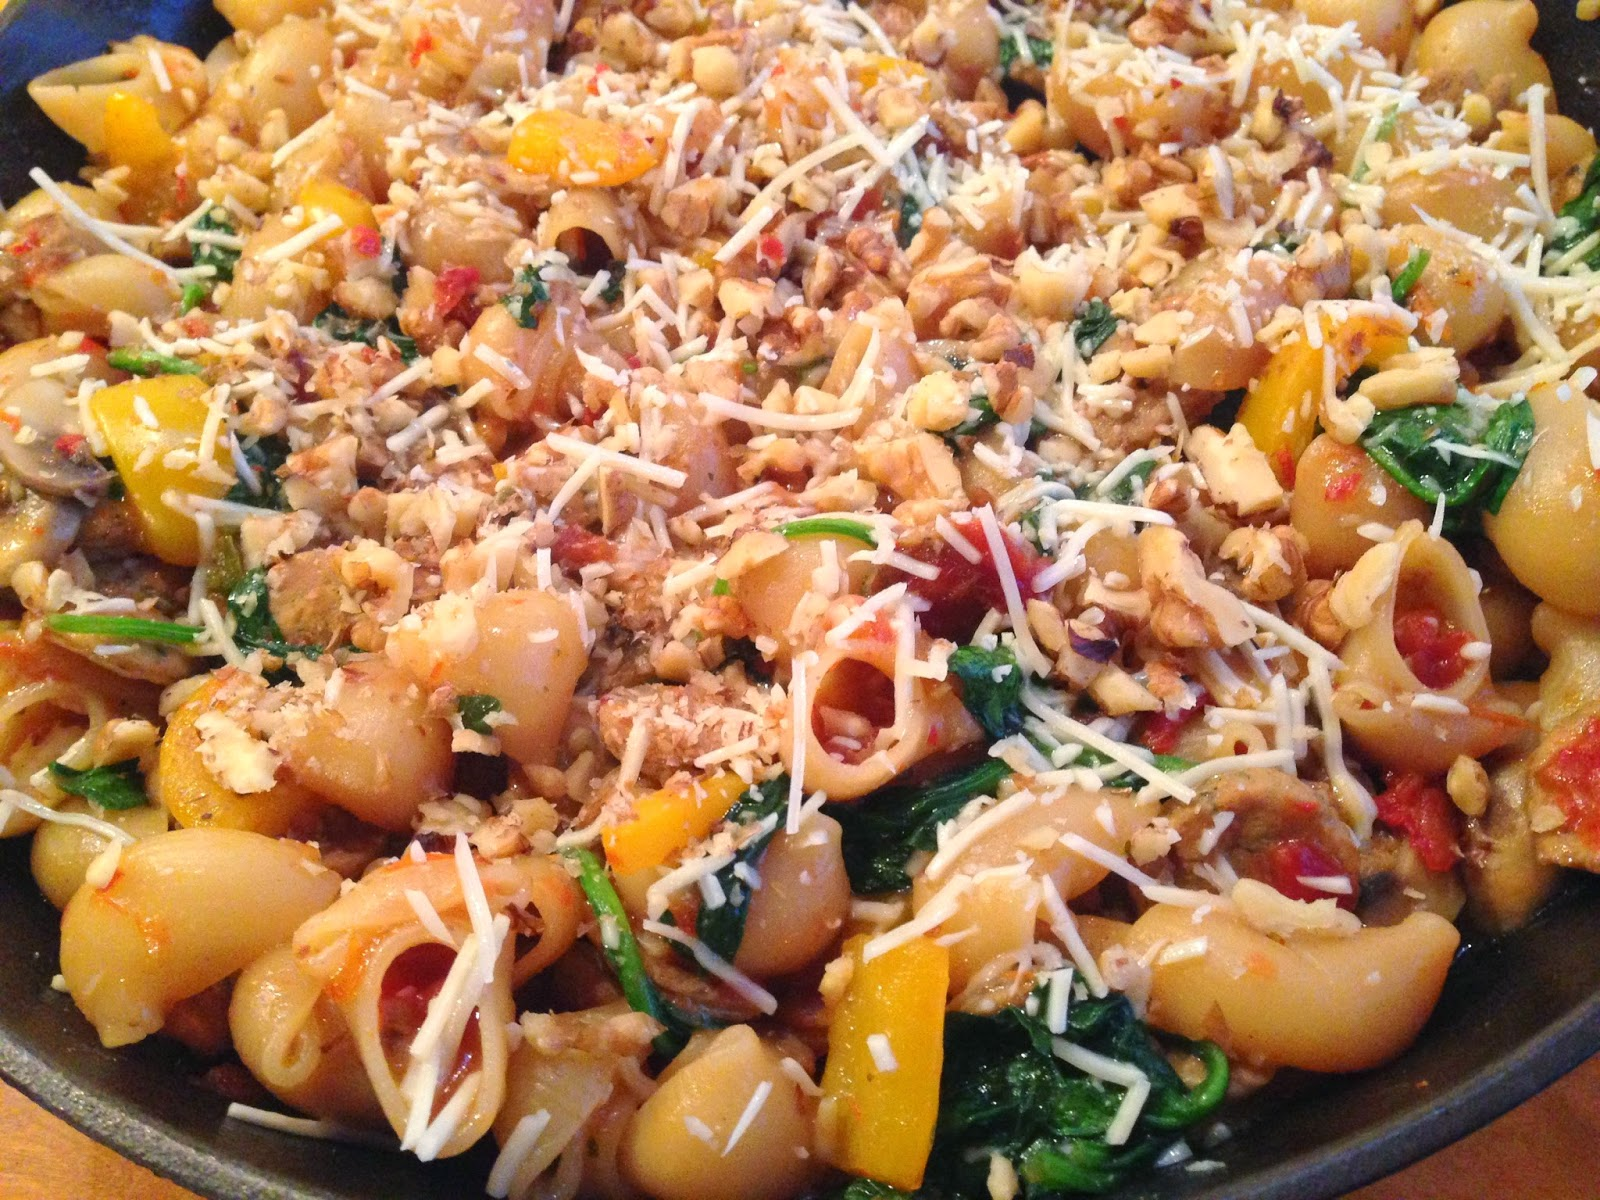 Skillet Pasta with Sausage and Vegetables